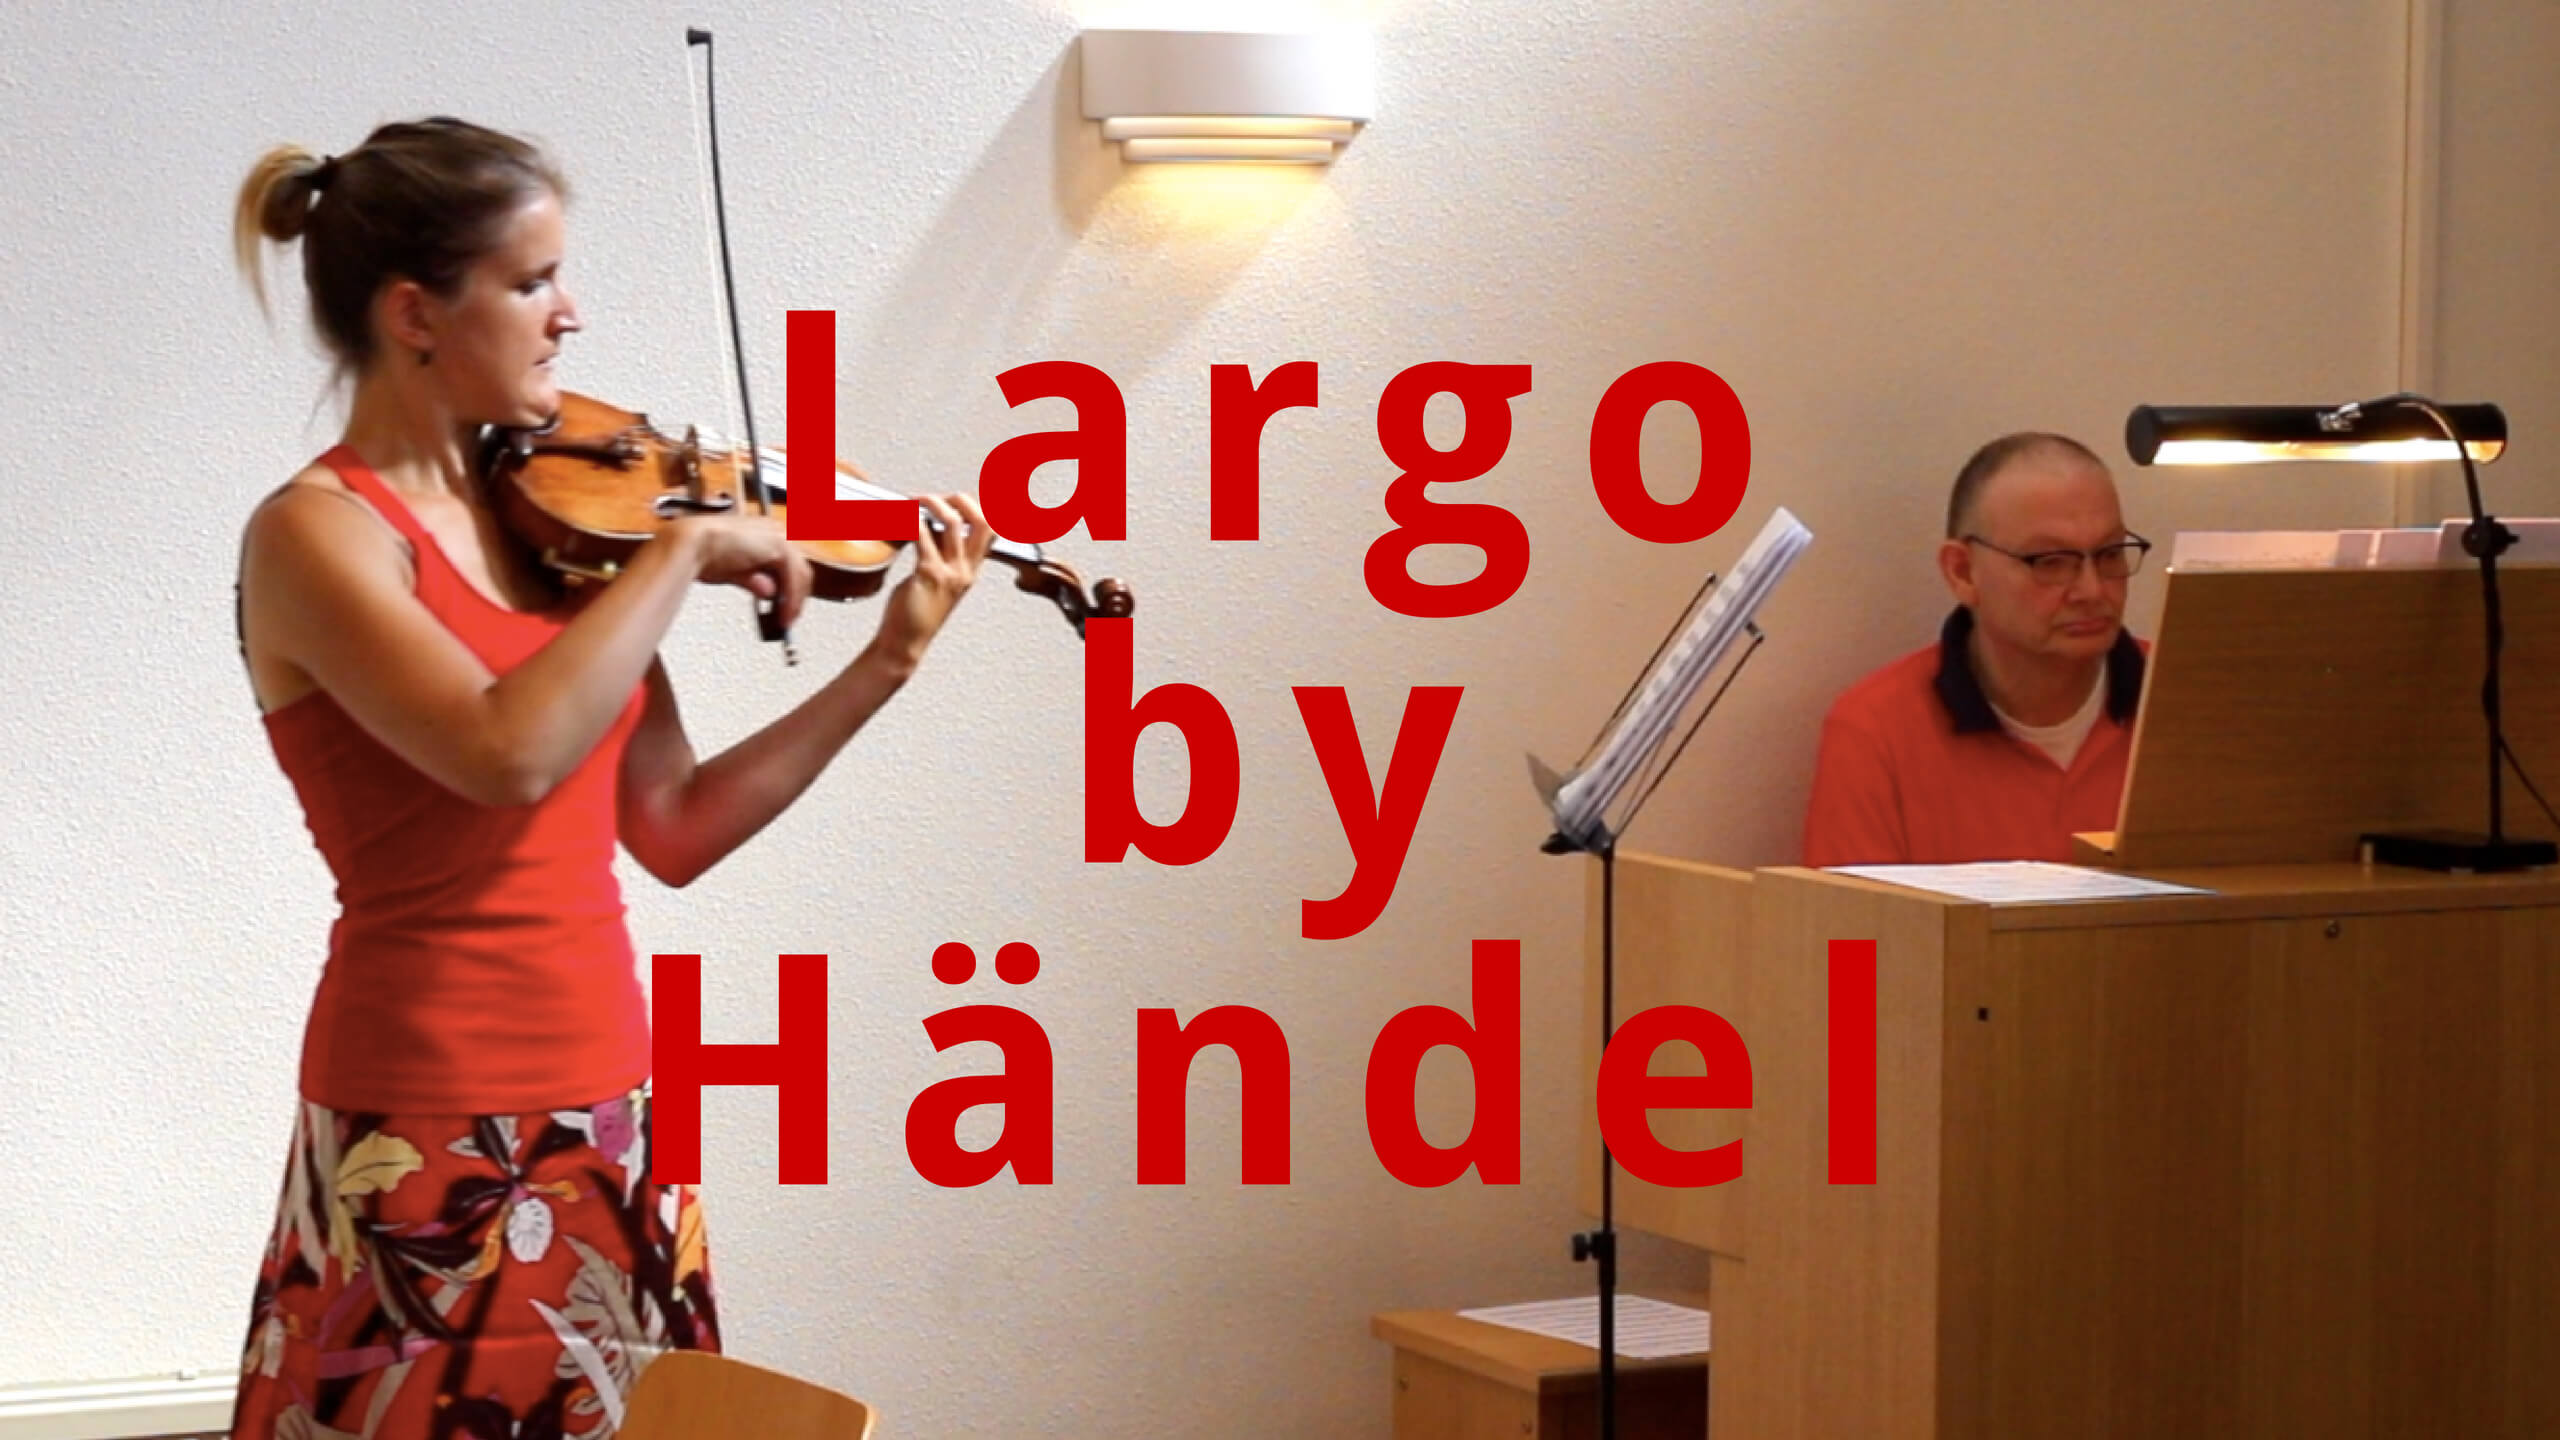 Largo (ombra mai fu), opening aria from the opera Xerxes (Serse) by George Frederic Händel (1738)